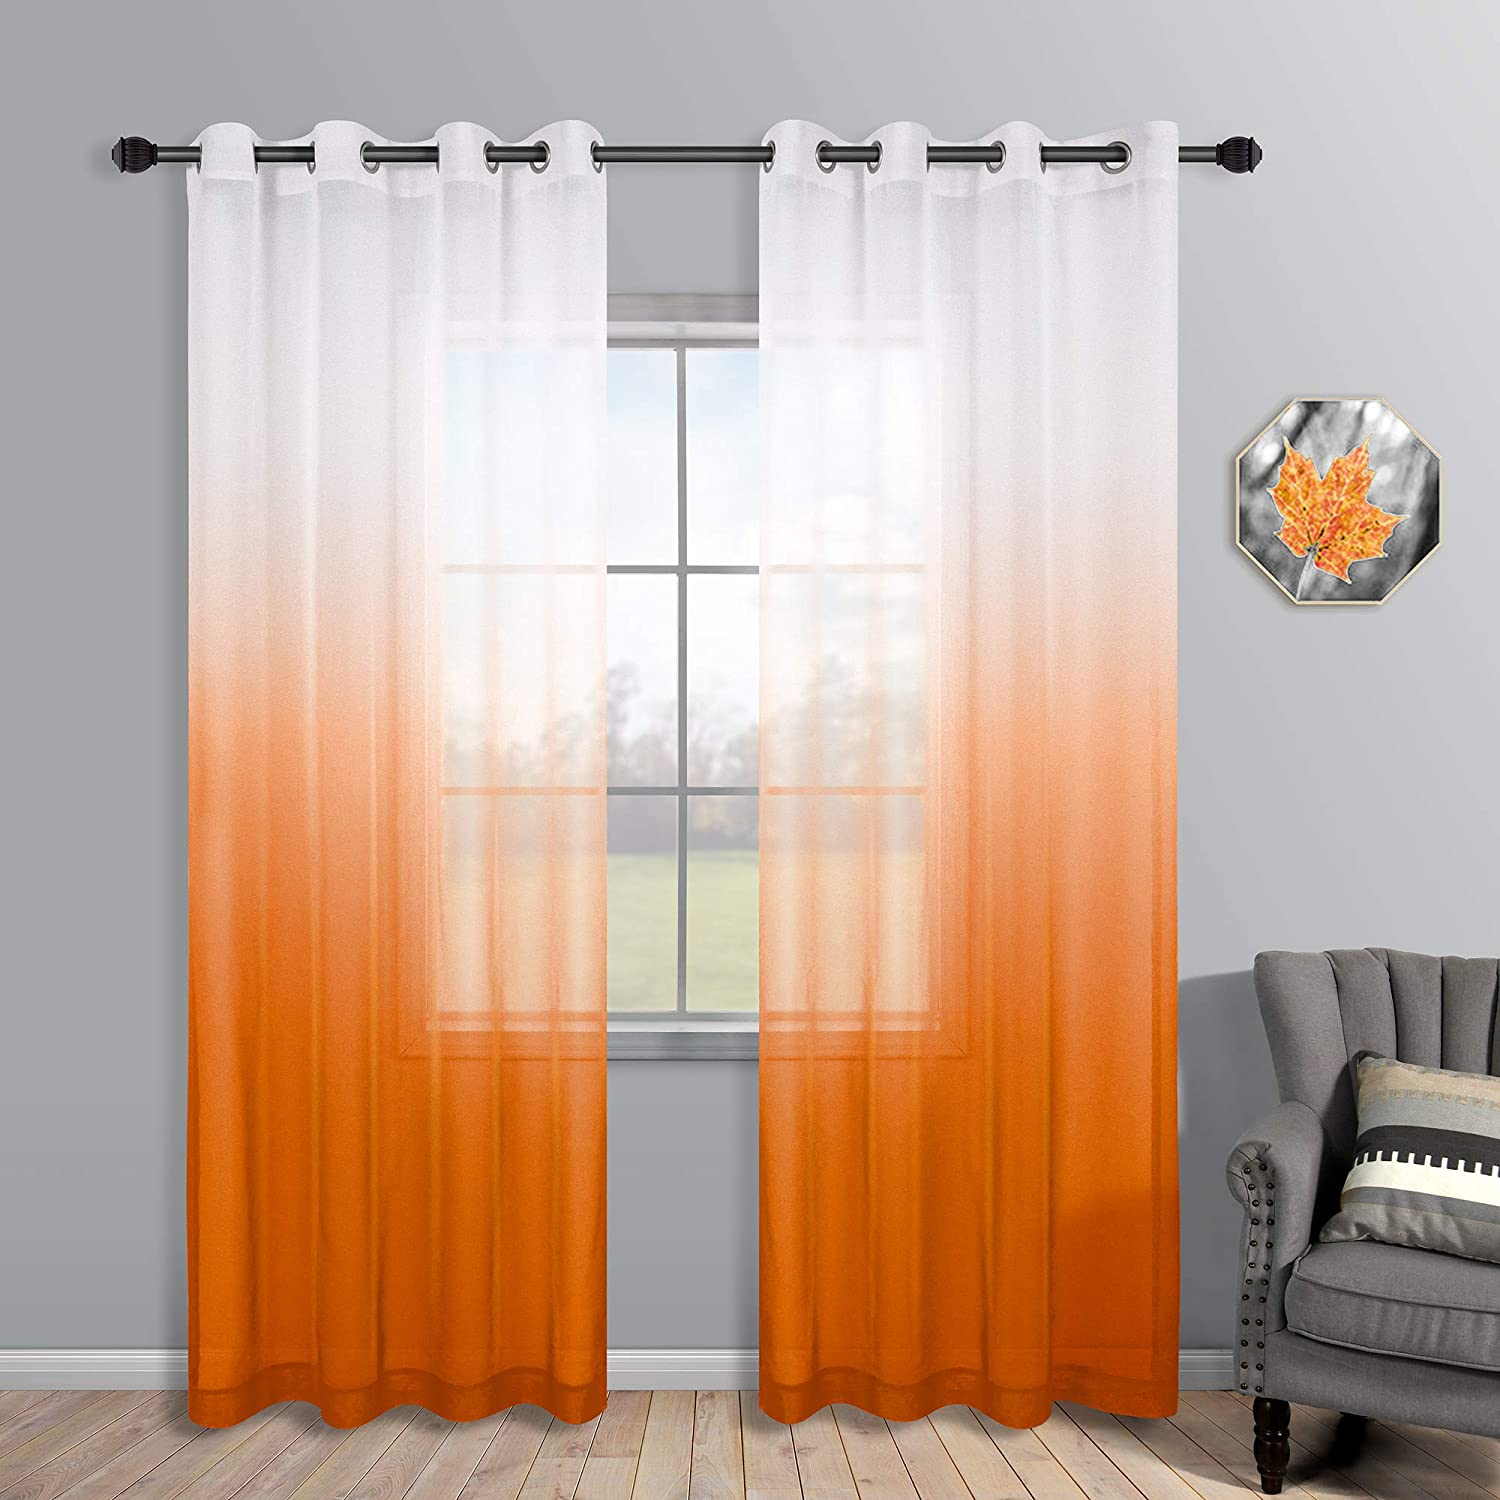 Orange Curtains 84 Inch Length for Living Room Decor Set of 2 Panels Grommet Faux Linen Semi Sheer Ombre Orange Curtains for Bedroom Boys Room Kids Playroom 52x84 Inches Long